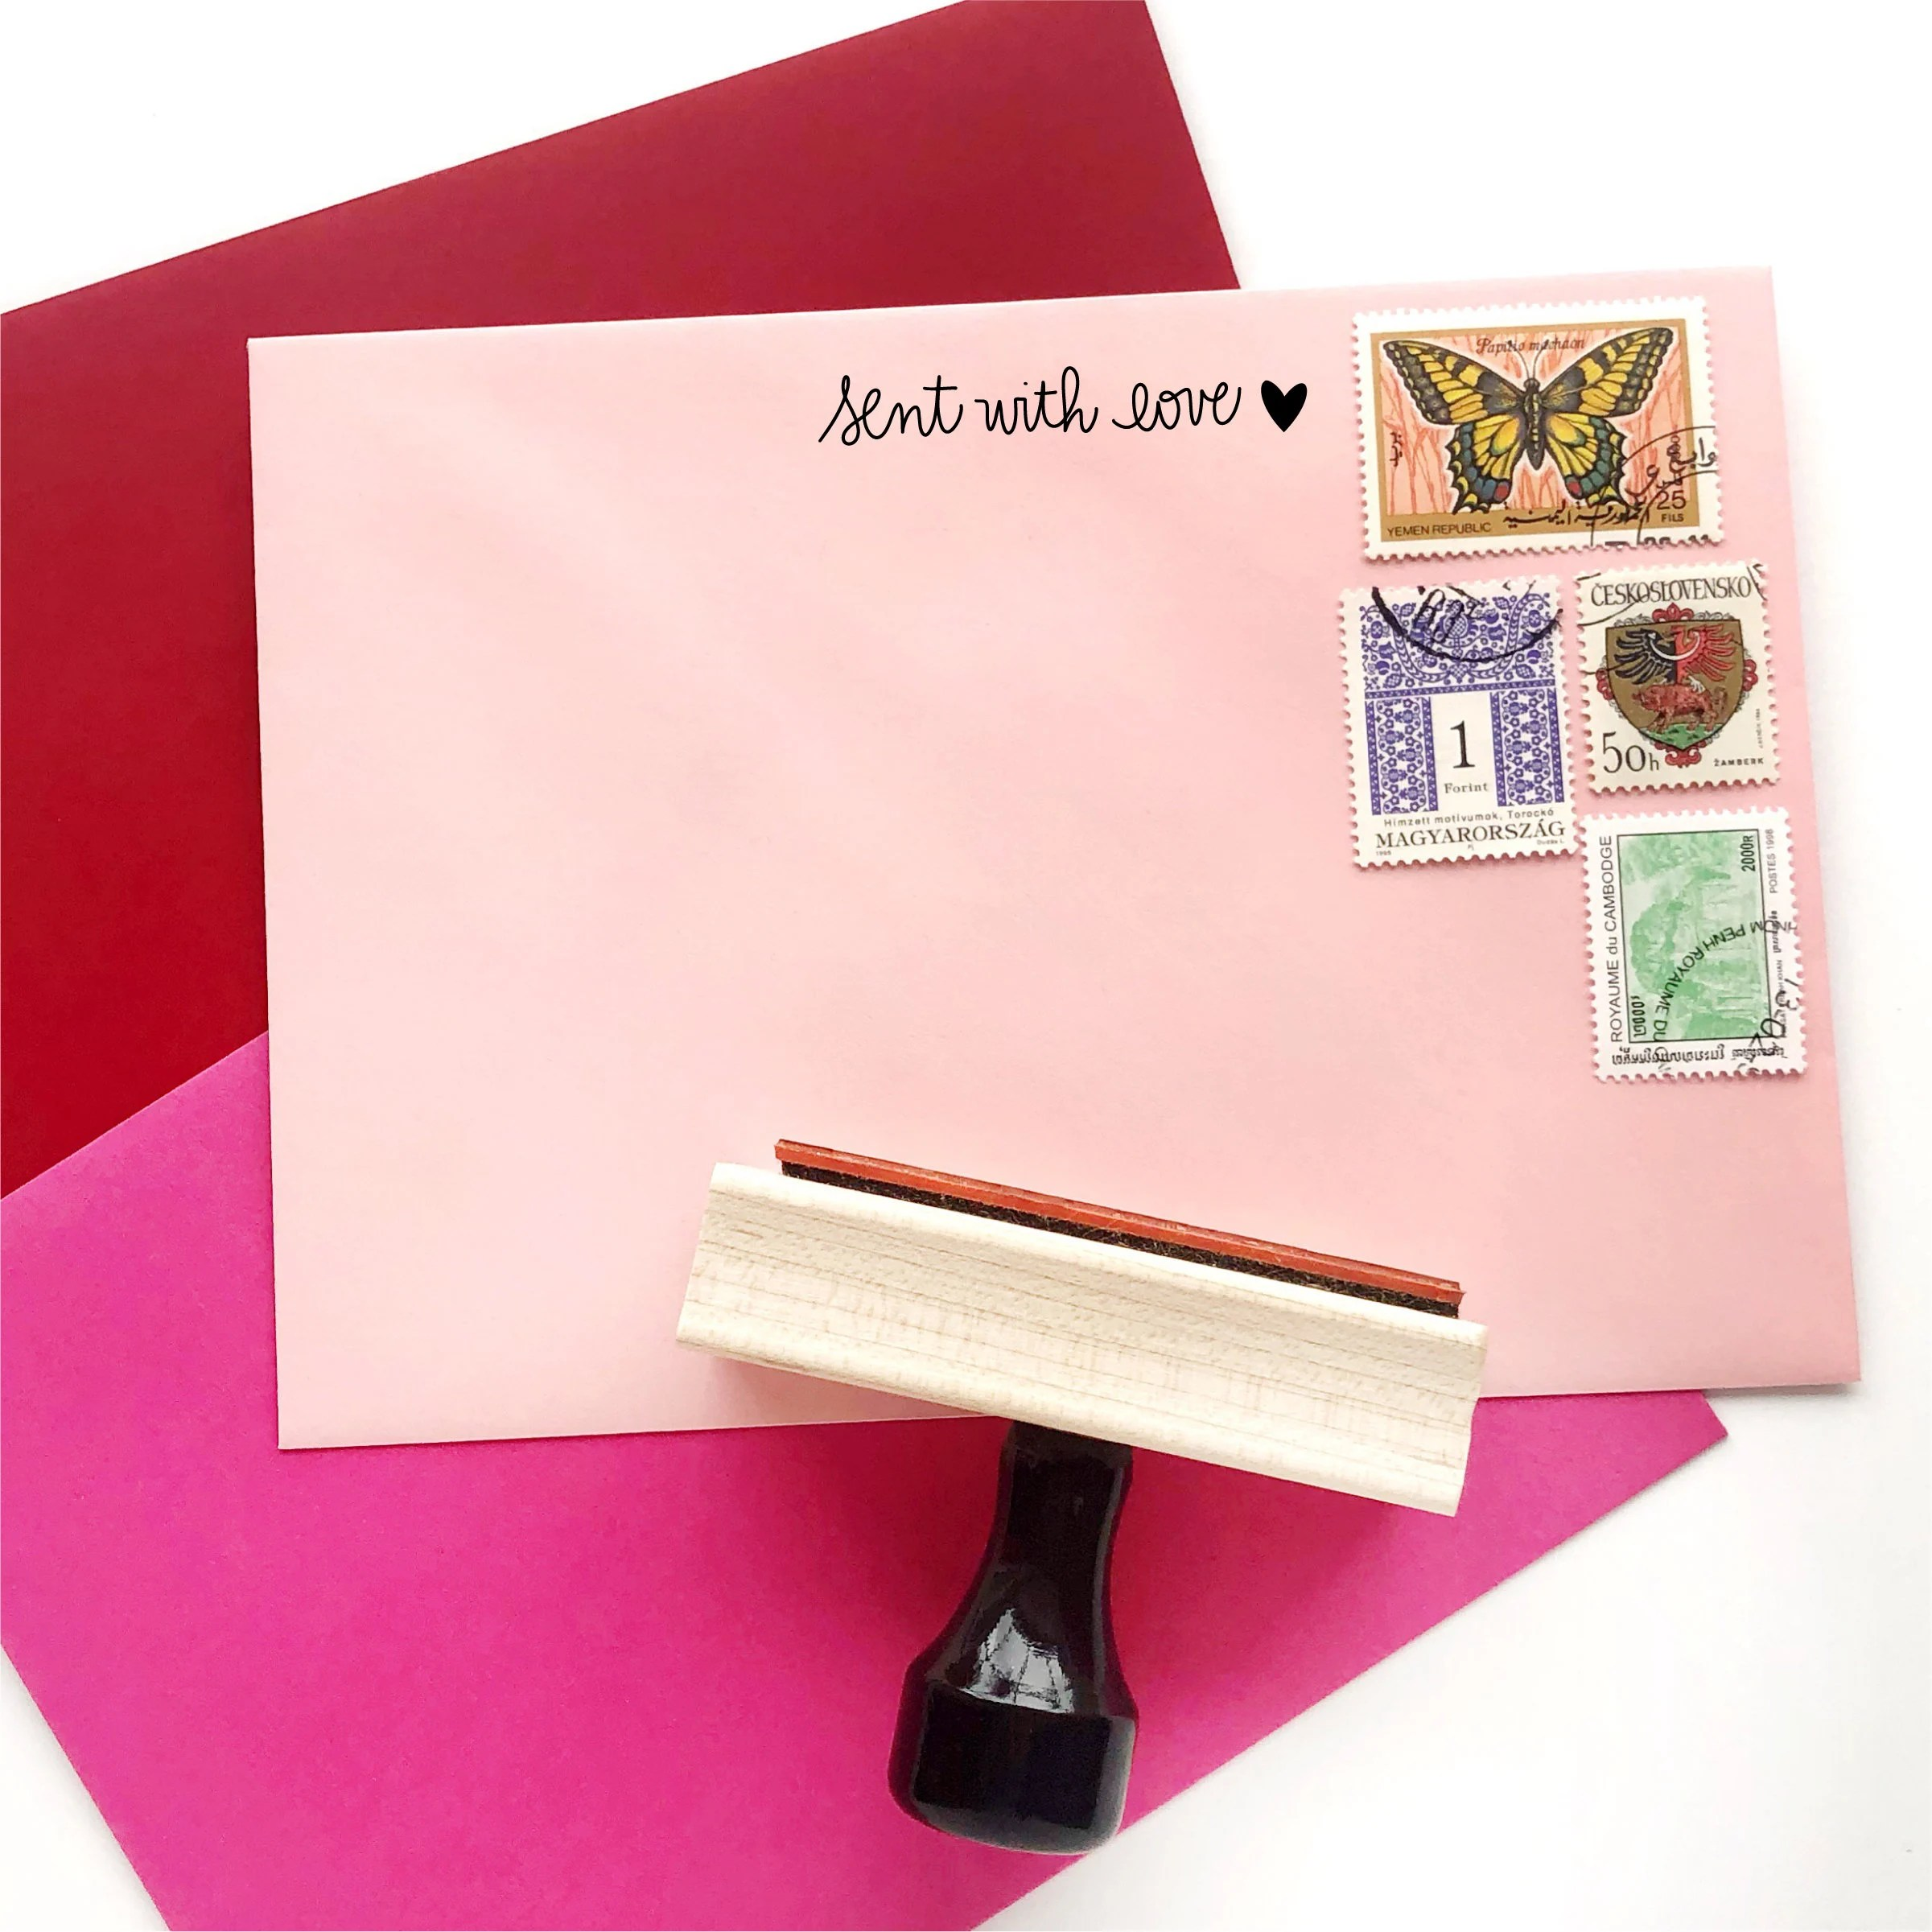 sent with love stamp